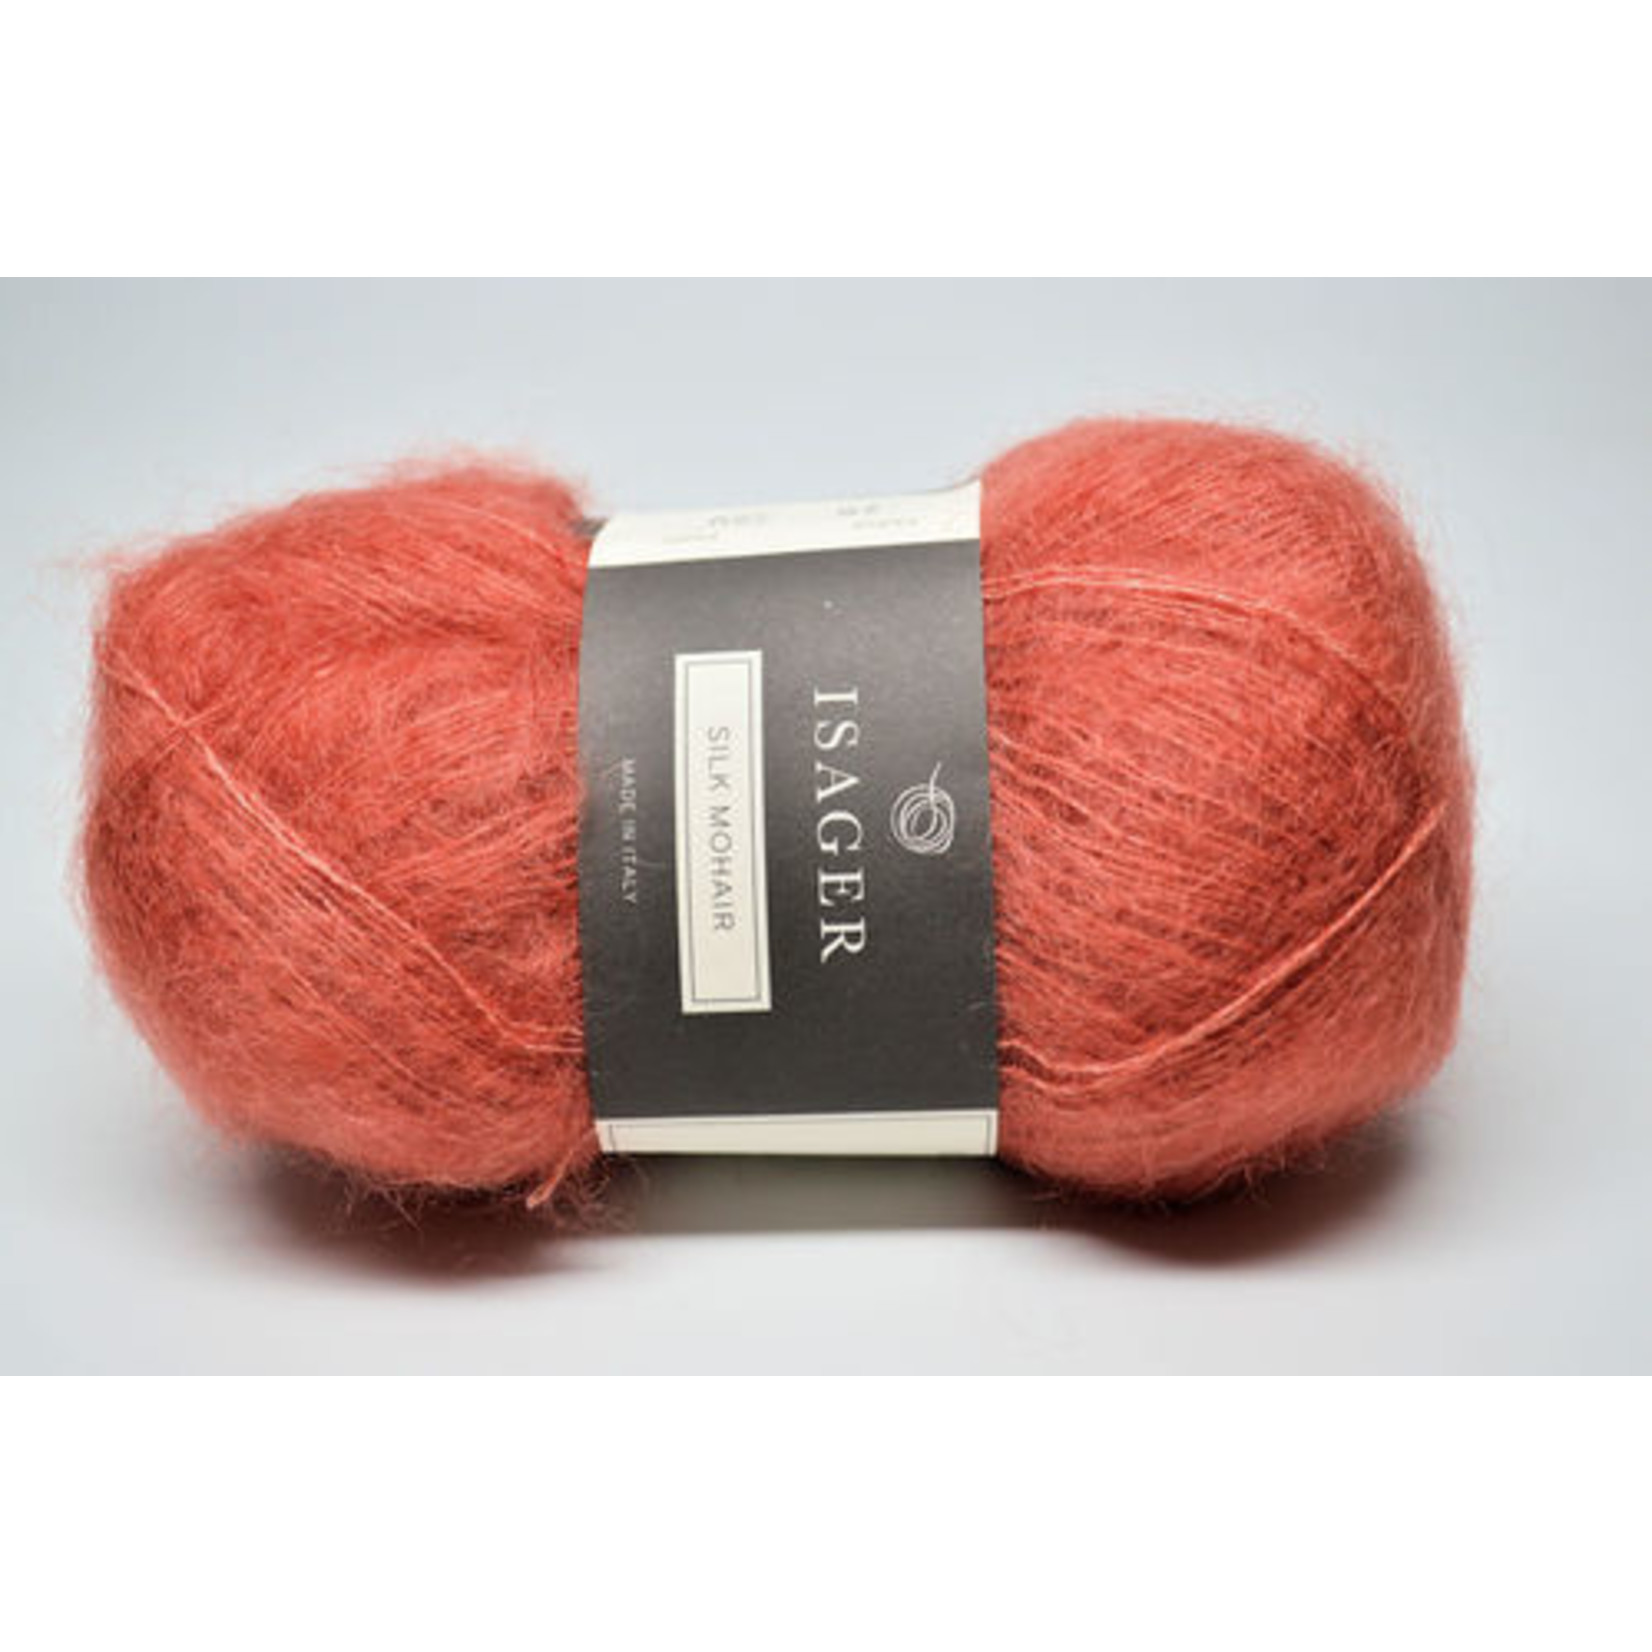 Tutto Isager Isager Silk Mohair, 28, Coral